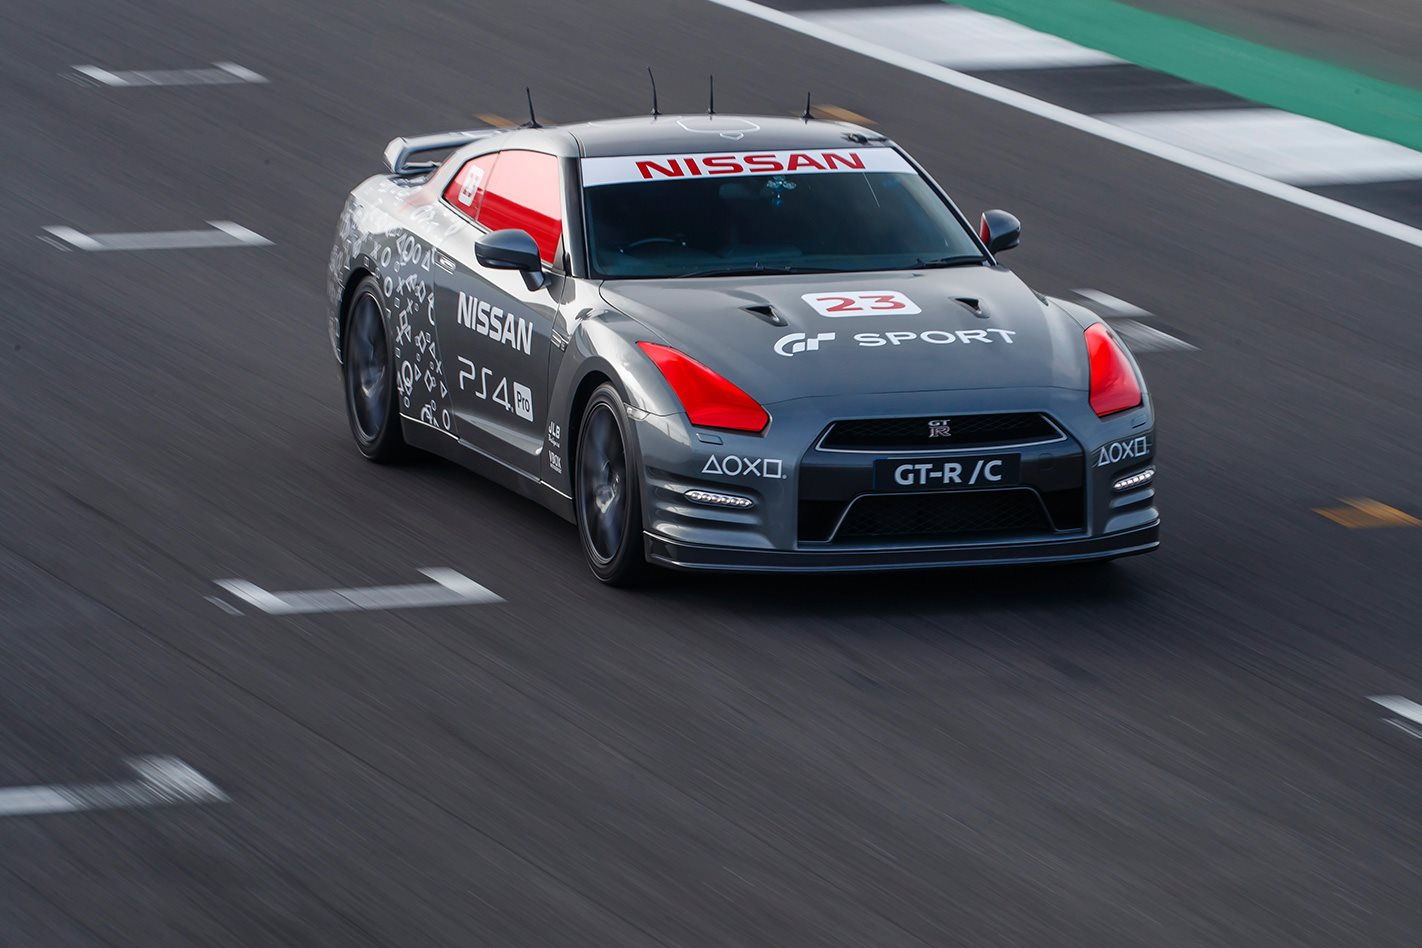 Nissan GT-R tops 211km/h driven with gaming controller